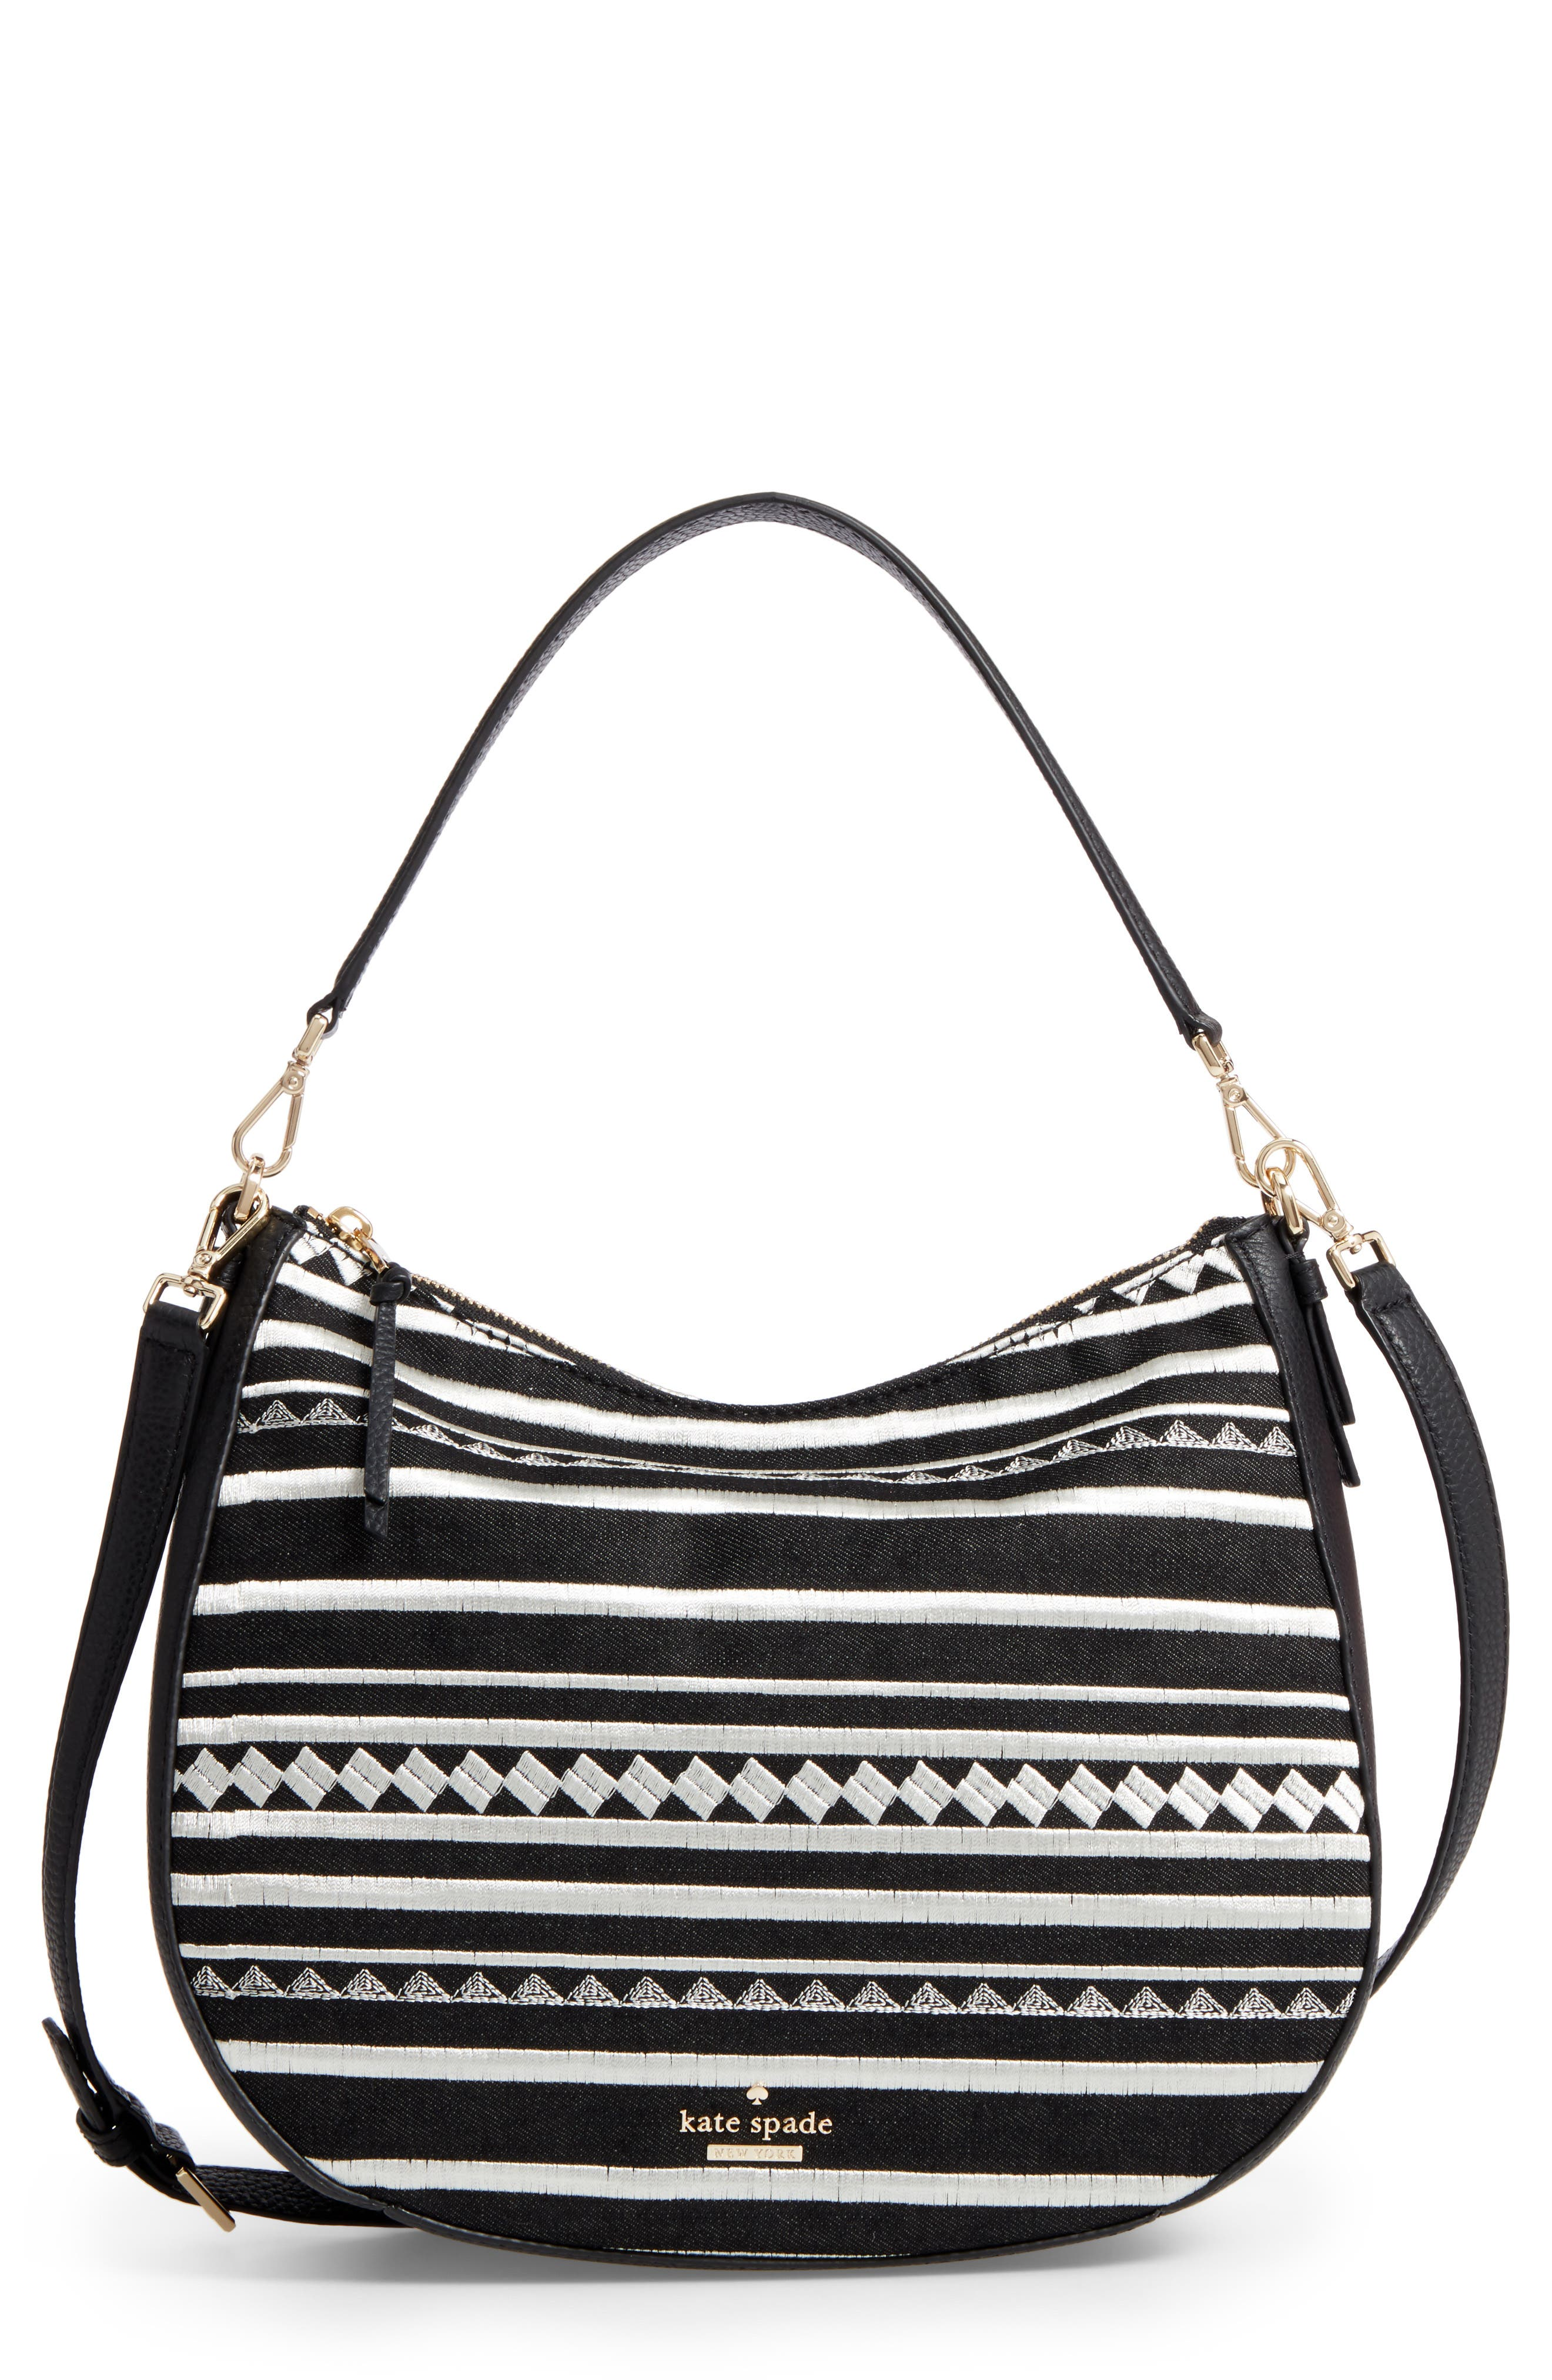 KATE SPADE NEW YORK jackson street embroidered mylie hobo